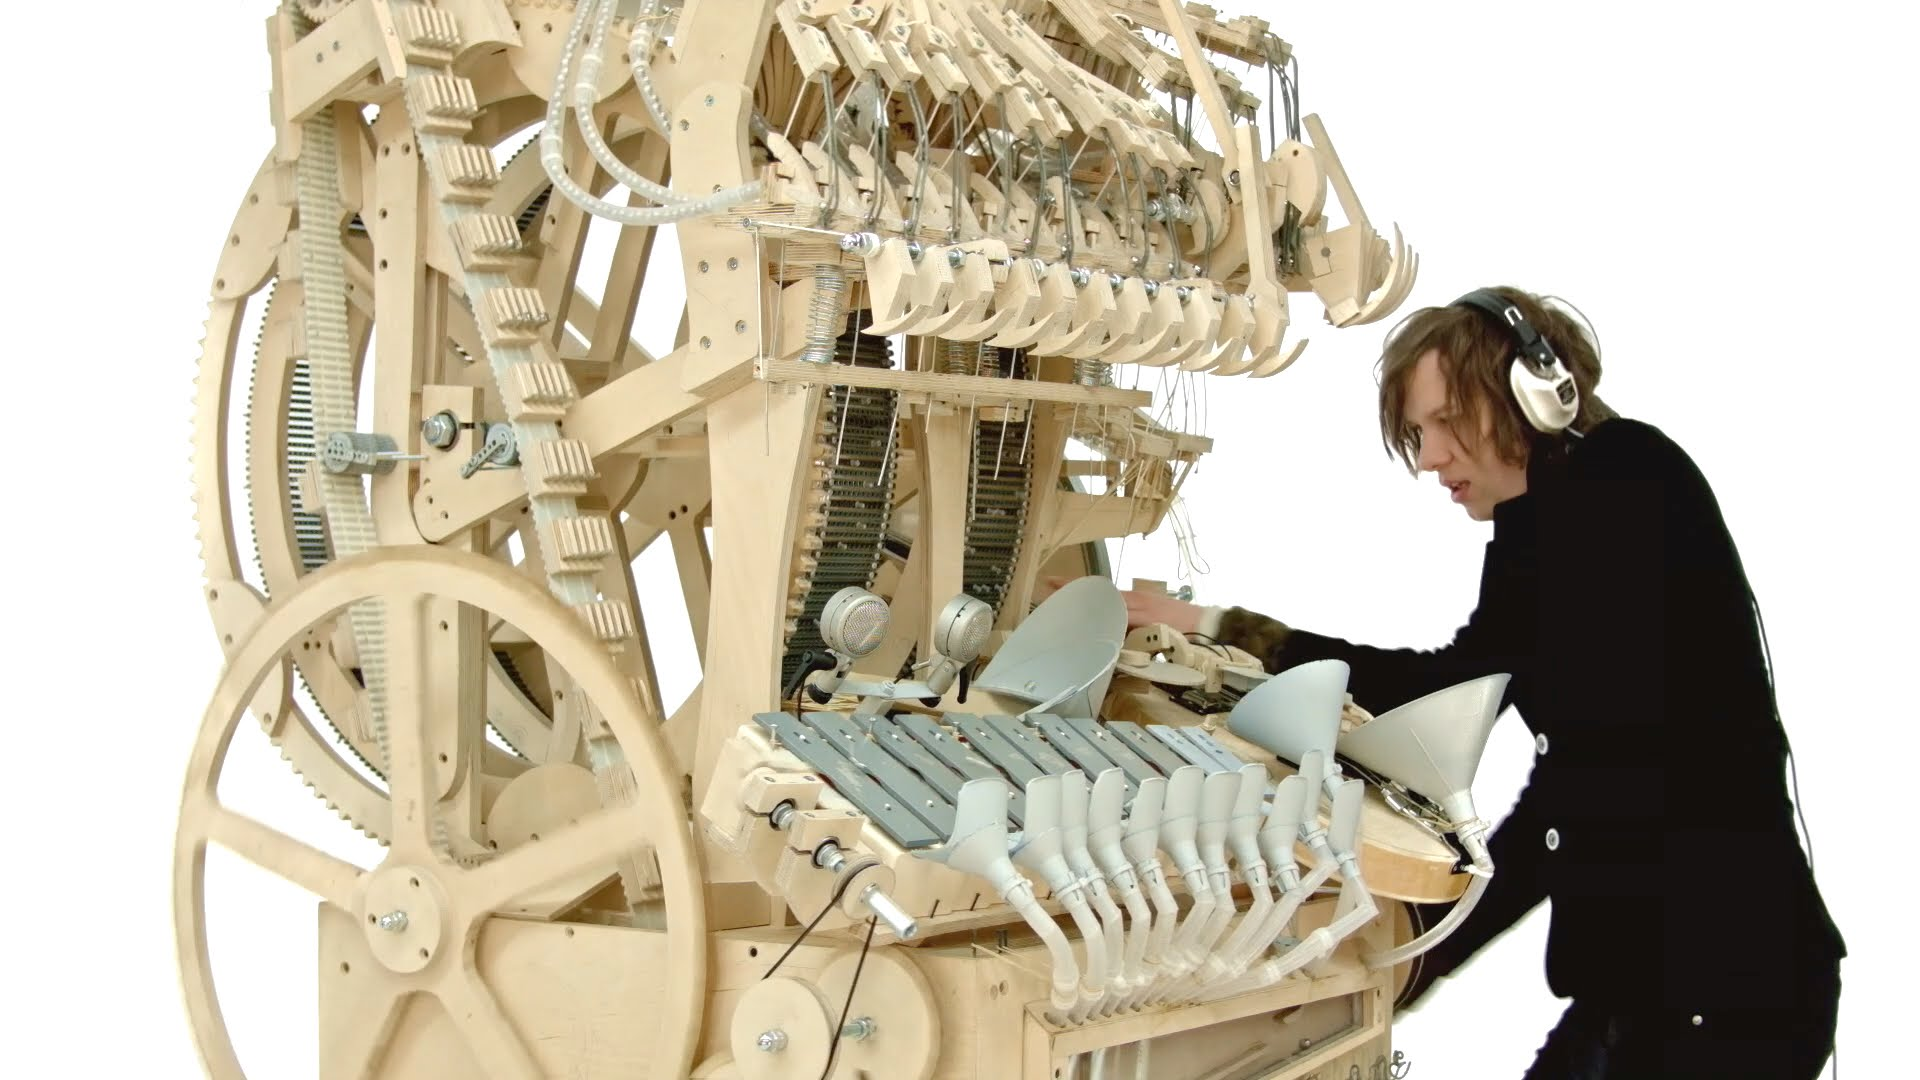 Swedish Folktronica band Wintergatan makes their living by creating weird and eccentric instruments.